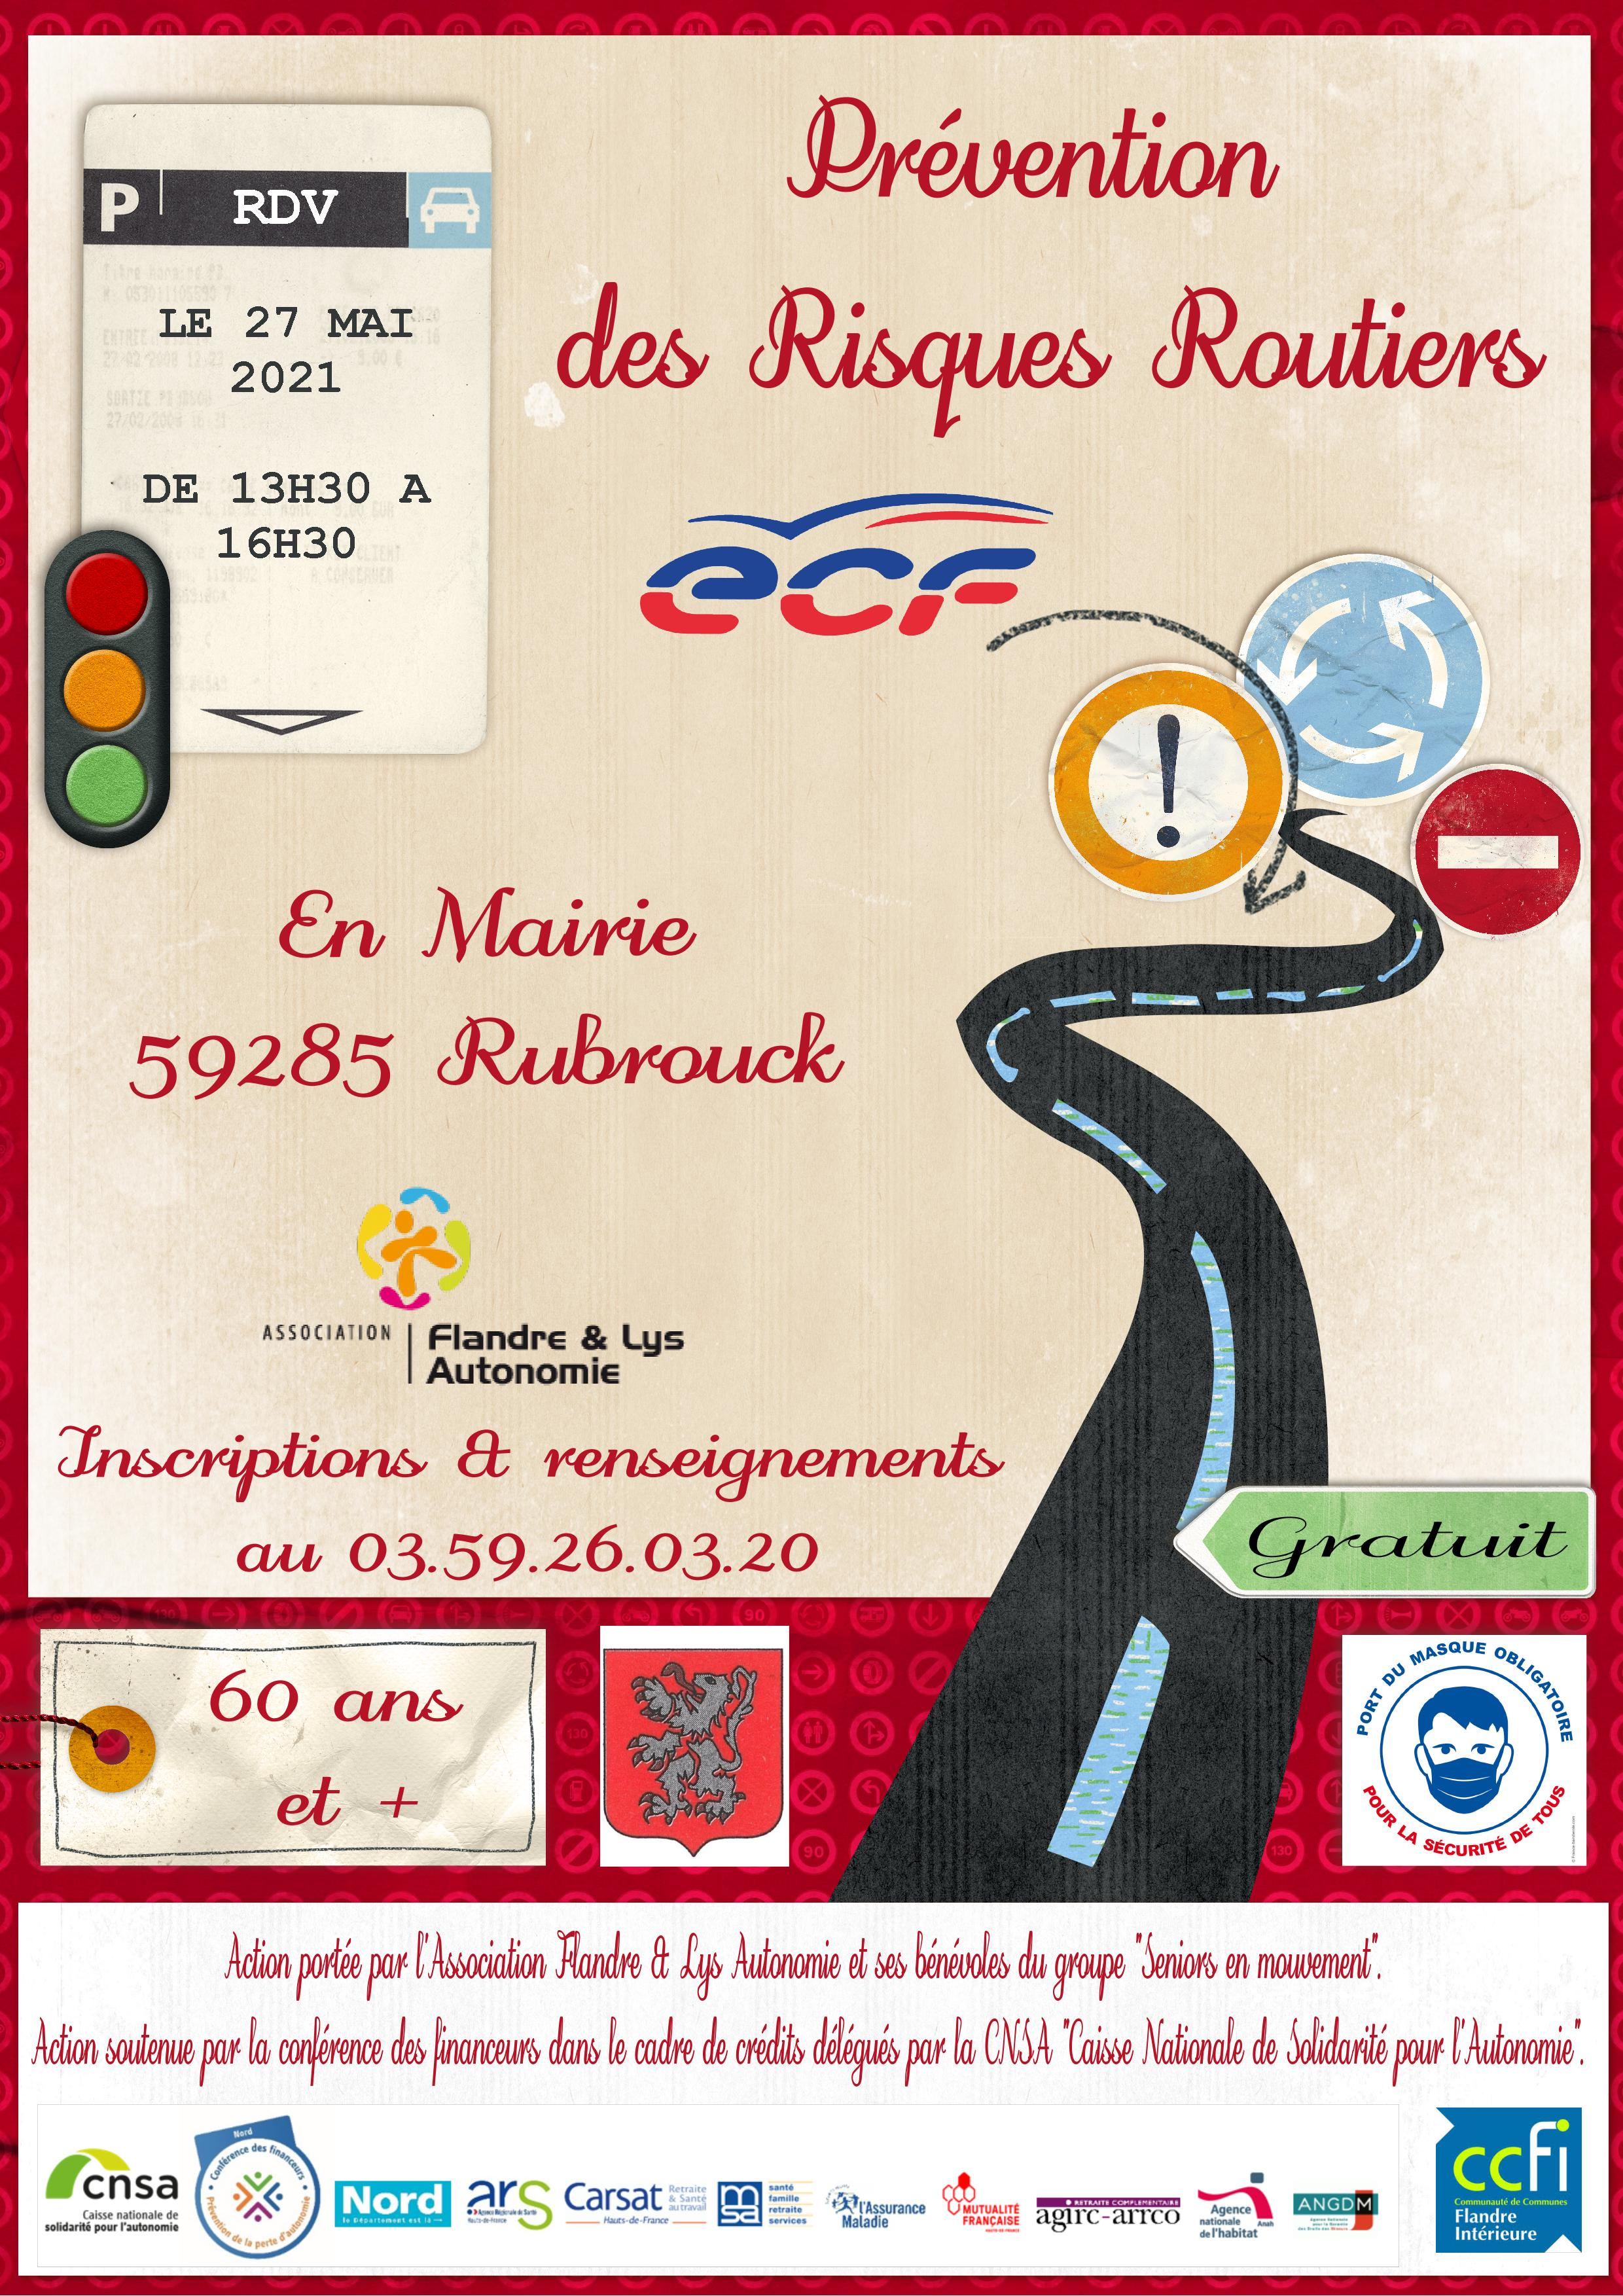 2021 05 27 risques routiers RUBROUCK.jpg